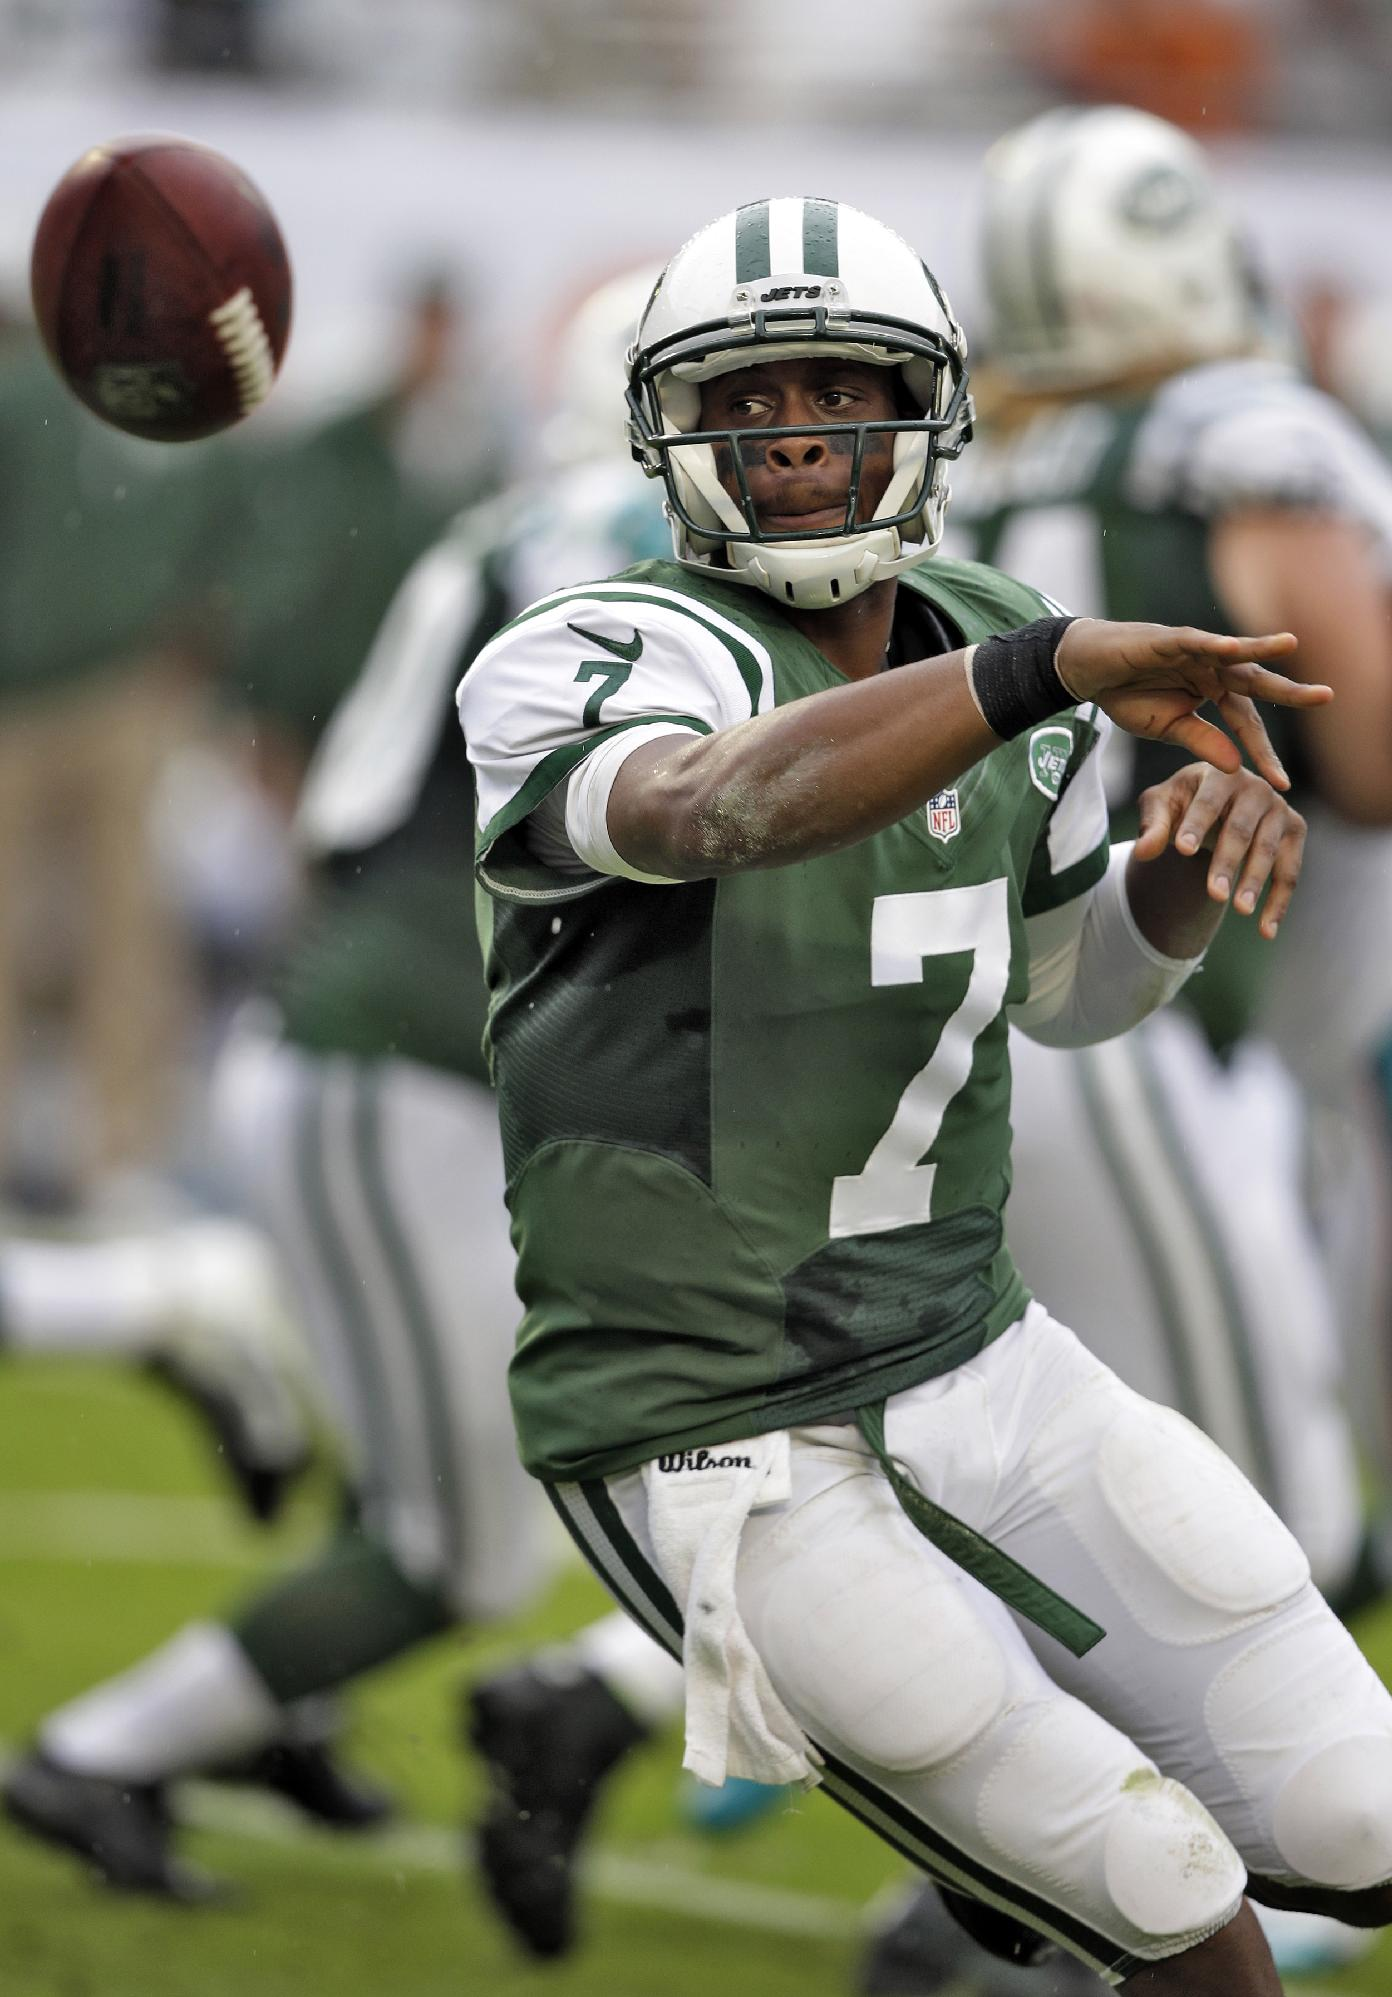 File-This Dec. 29, 2013, file photo shows New York Jets quarterback Geno Smith pitching the ball during the first quarter of an NFL football game against the Miami Dolphins, in Miami Gardens, Fla. Despite having inconsistent rookie quarterback Smith start every game last season and an offense that lacked big-time playmakers, the Jets finished 8-8